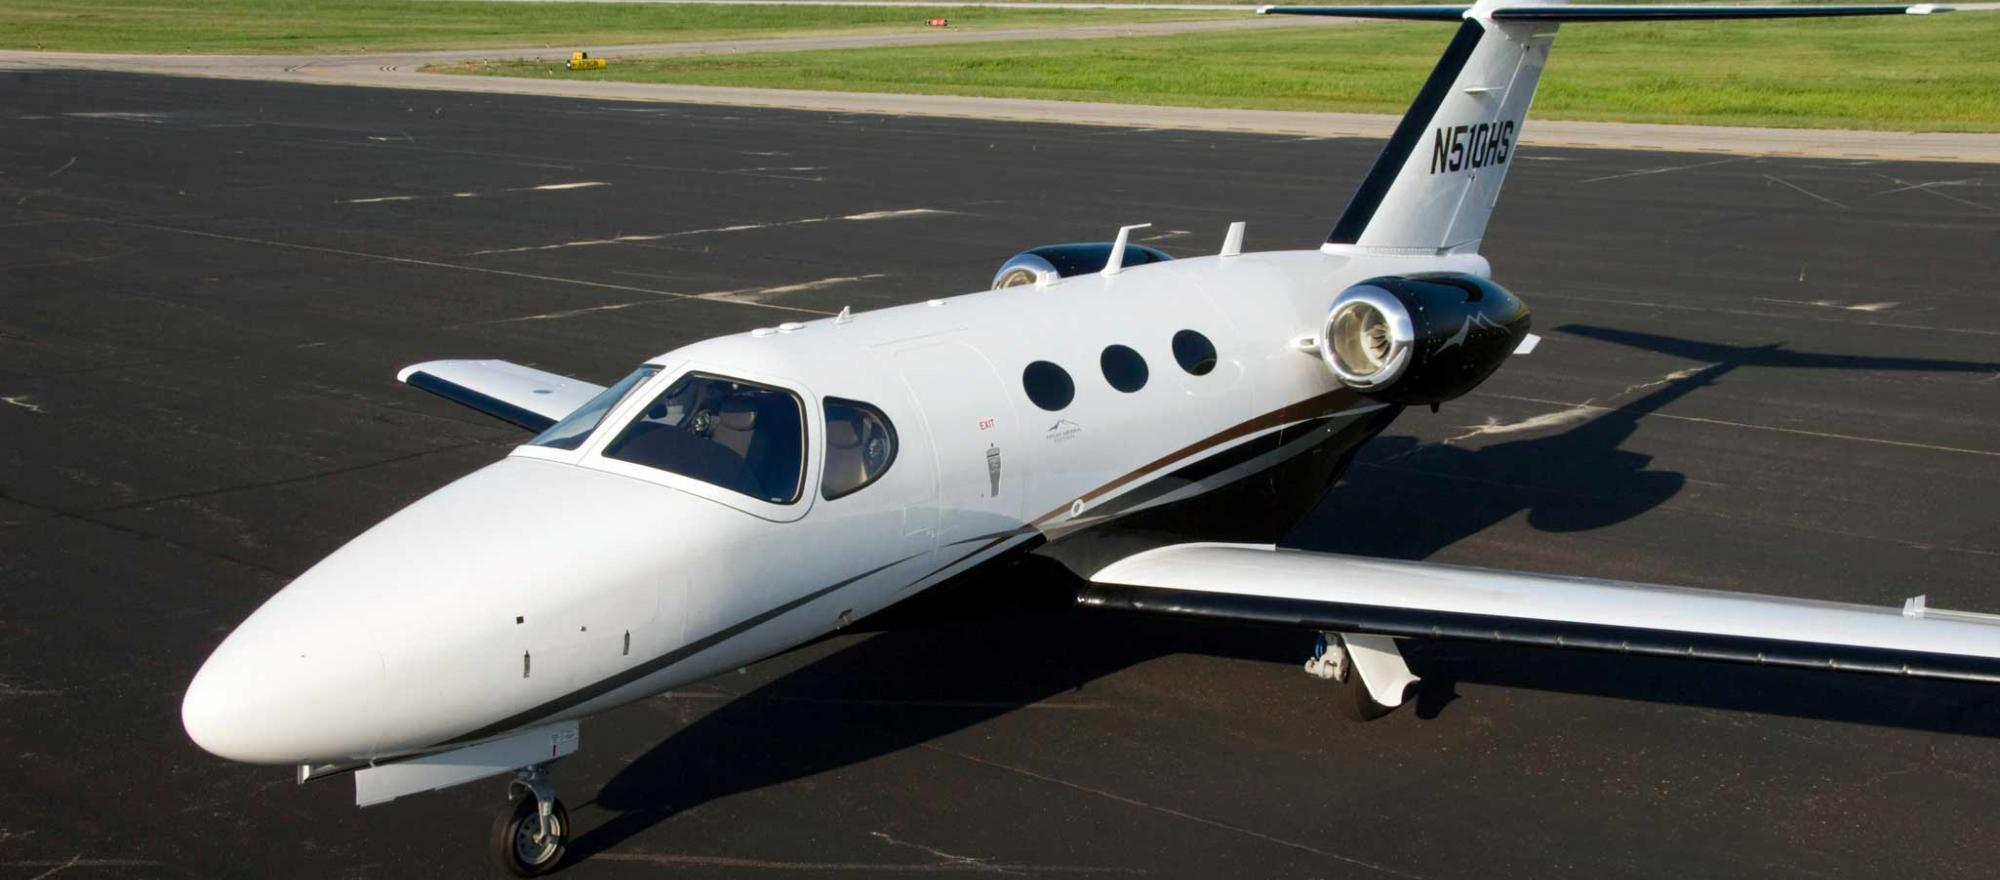 Textron Inc.: Only Commercial Aviation Is Performing Well And Competition Is Increasing